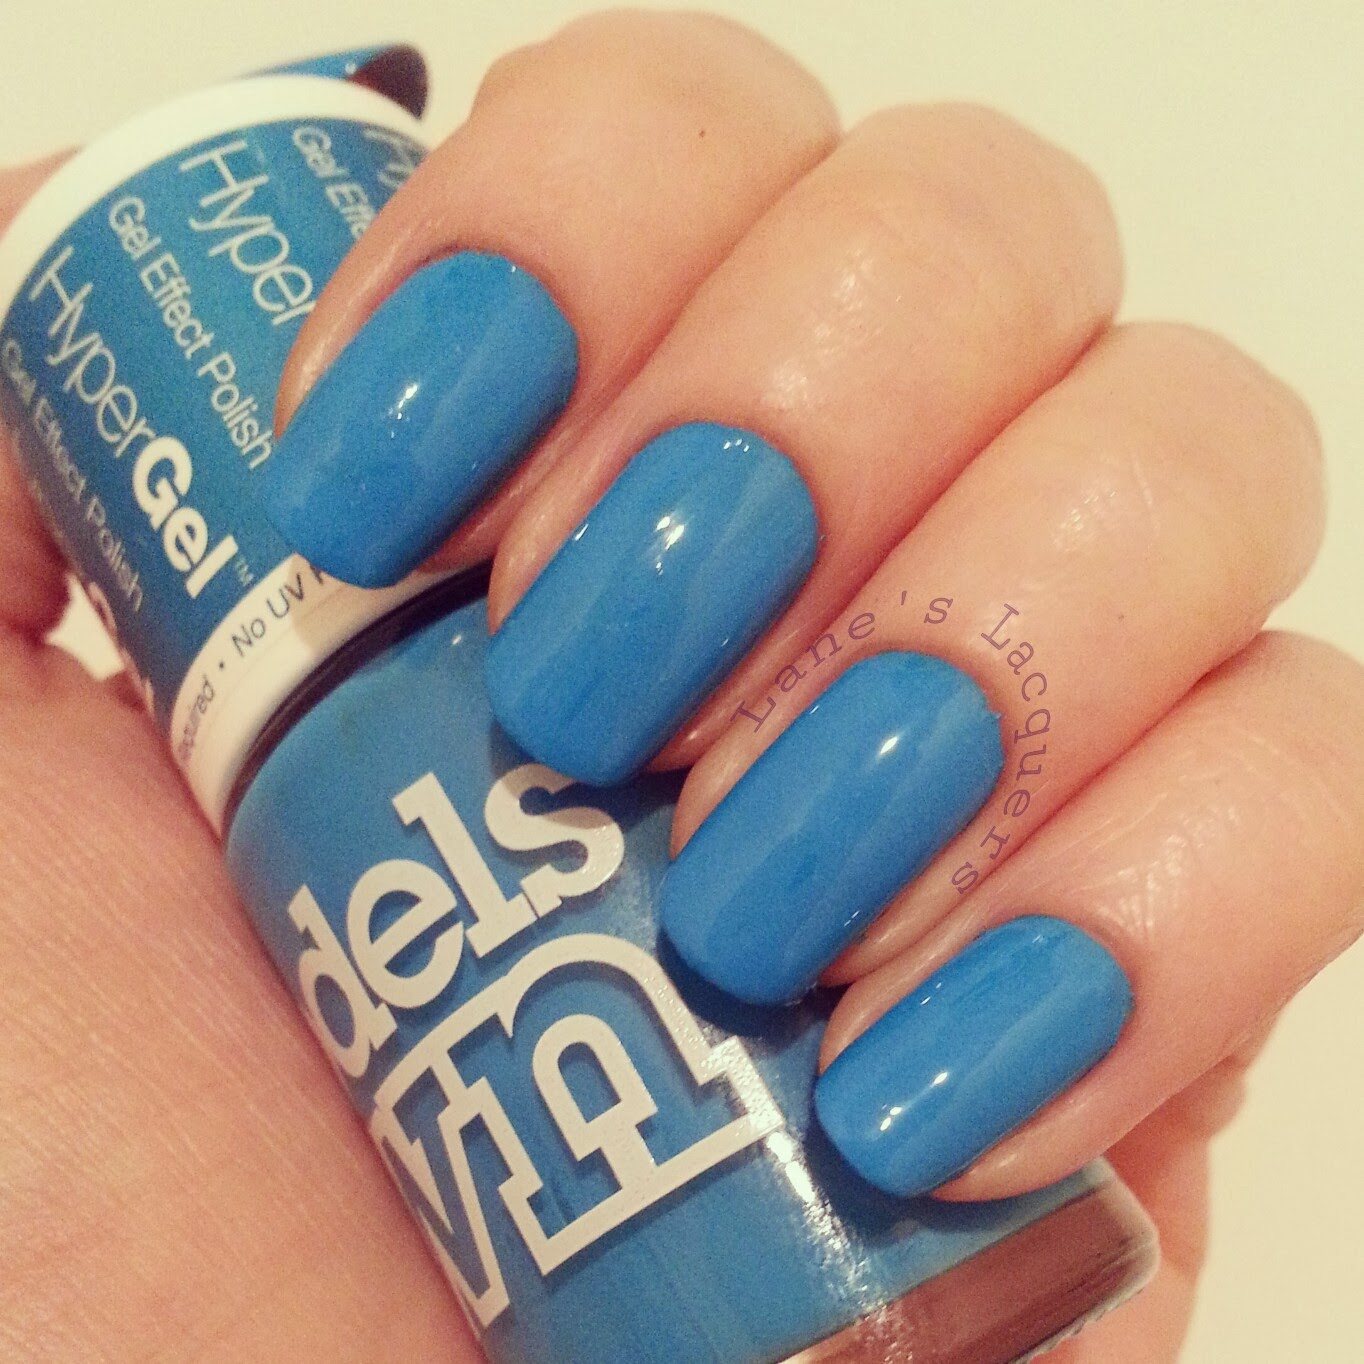 models-own-hypergels-blue-glint-nails